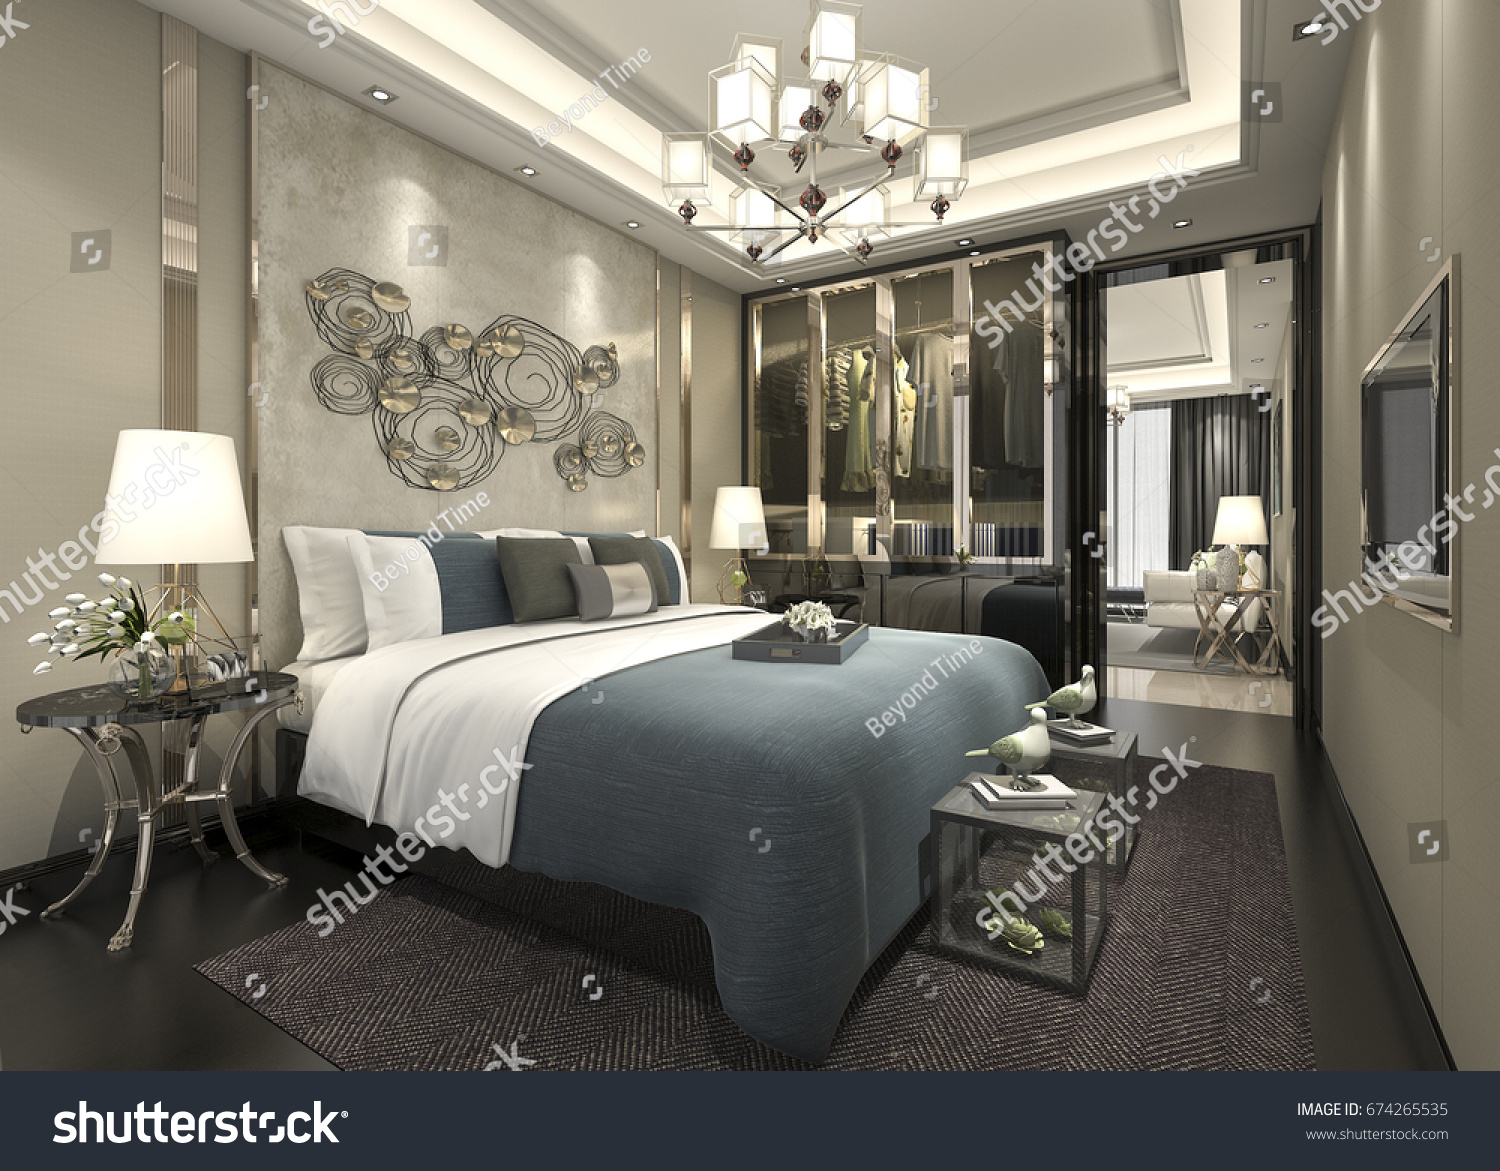 3d rendering luxury modern bedroom suite in hotel with wardrobe and walk in closet - Luxury Modern Bedroom